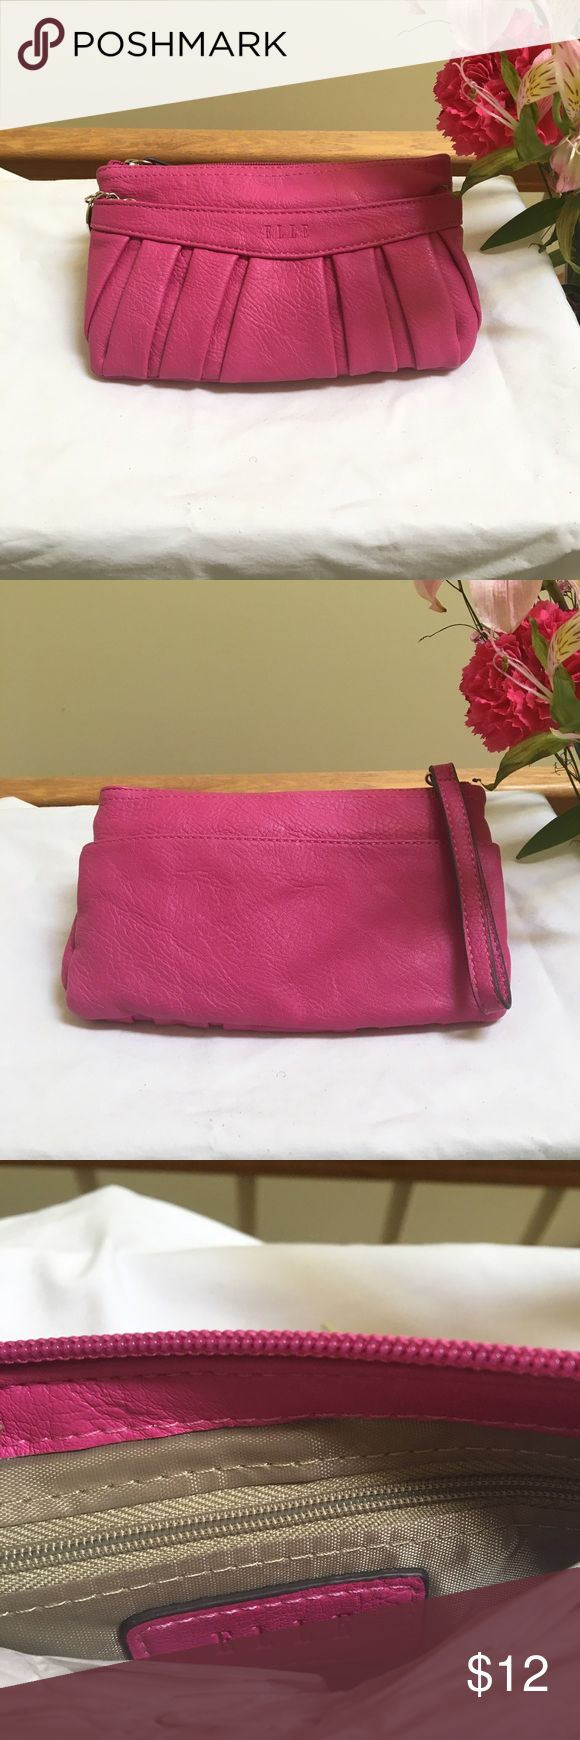 Women's Zip Wristlet Pouch -Elle • One Size • A easy a chic way to carry all of your personal needs; This Women's Wristlet Pouch is a must- have. For use as a wallet, just toss this pouch into a larger bag. Elle Bags Clutches & Wristlets